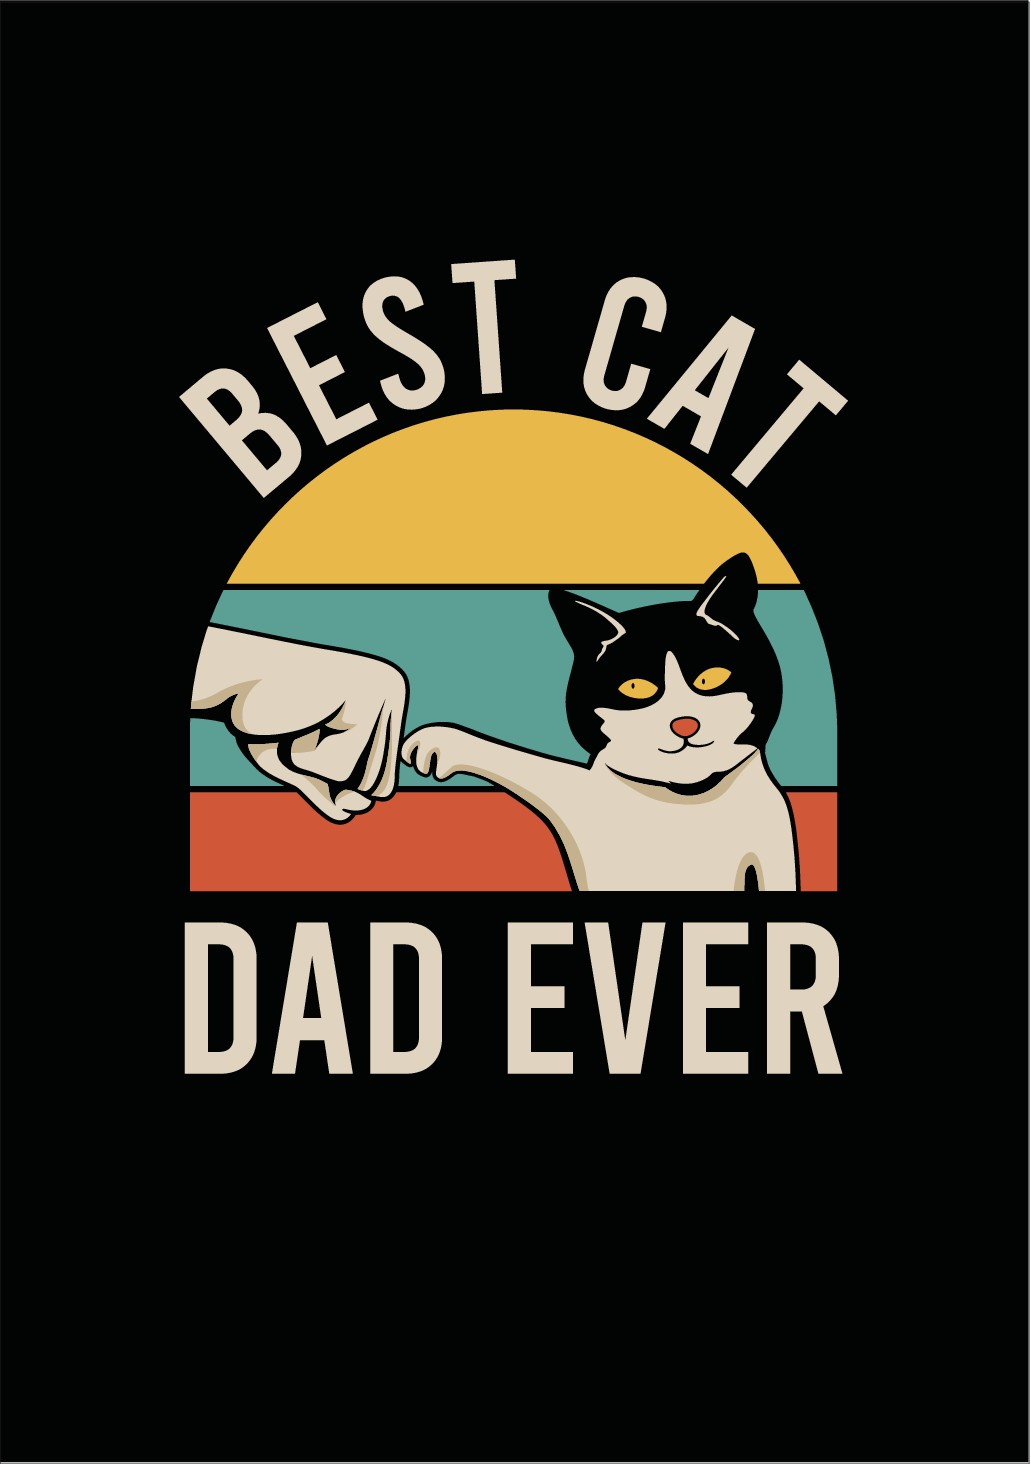 Best Cat Dad Ever (With Fist Bump between cat and human)